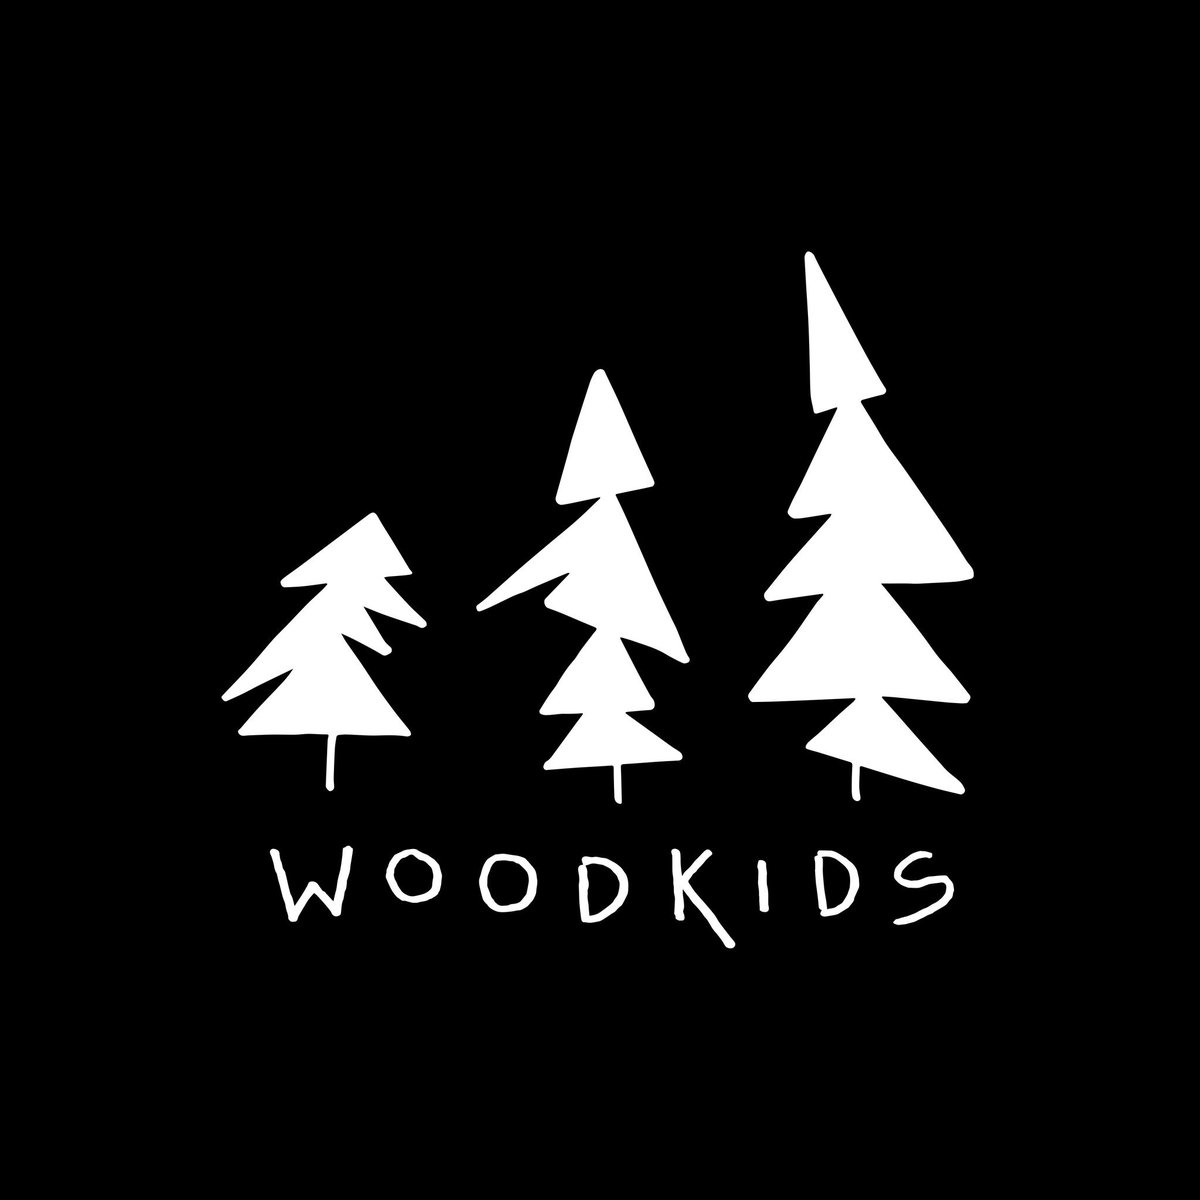 OK KID | Woodkids